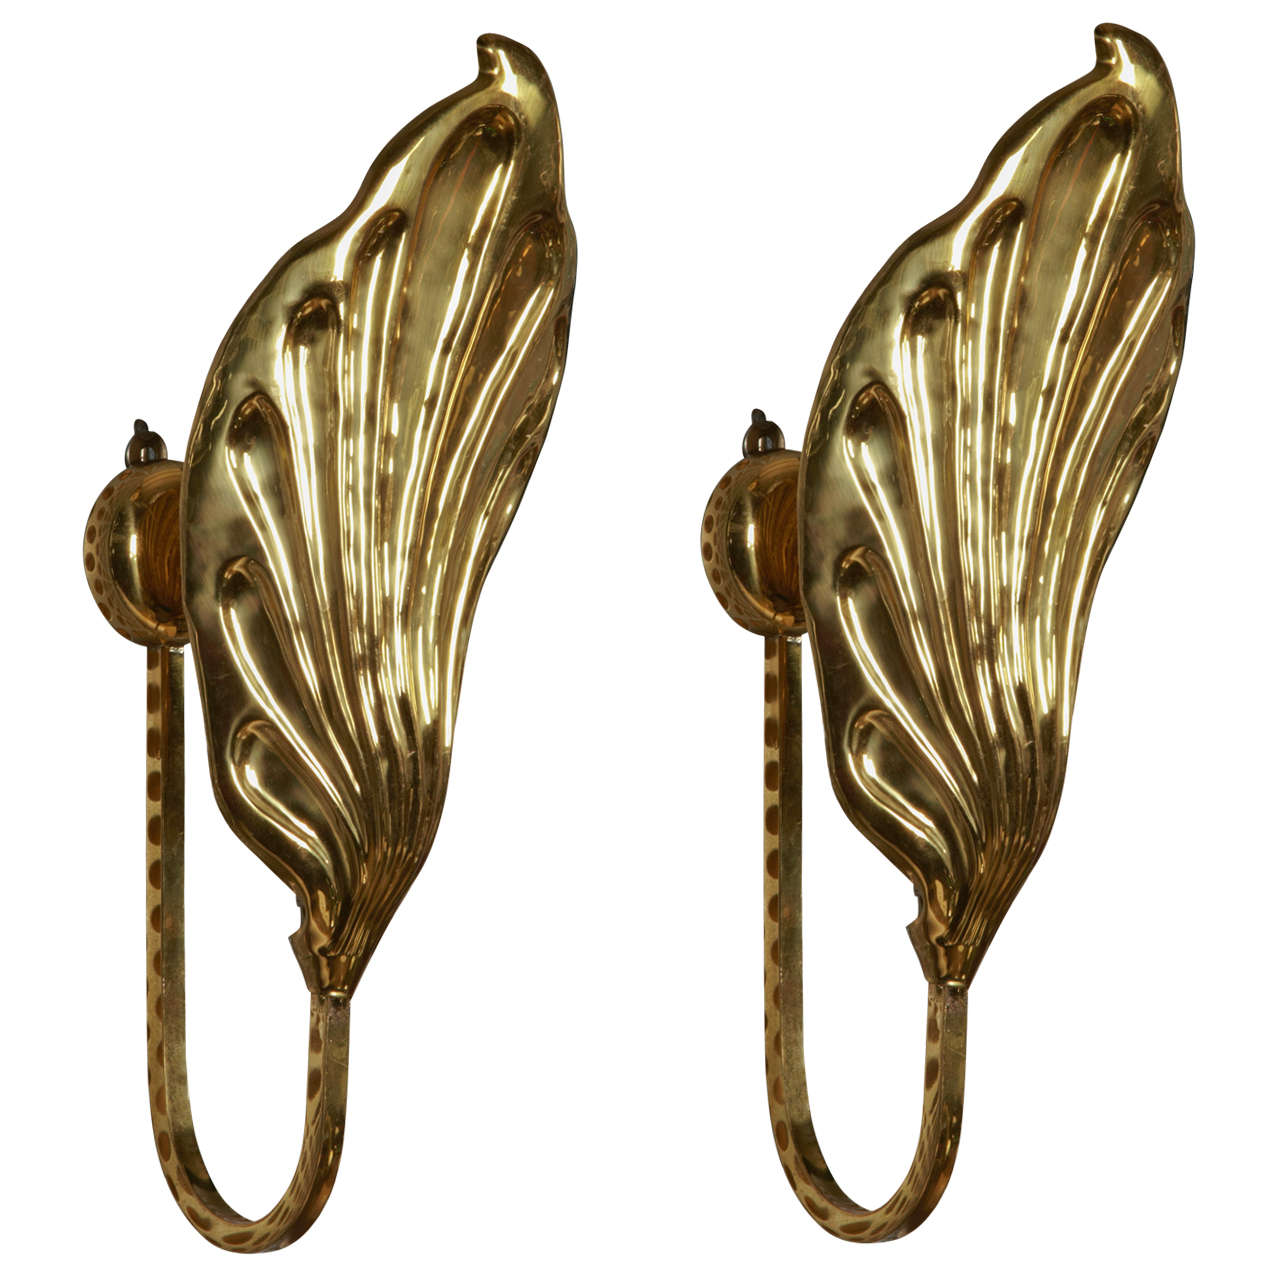 Pair of Leafs Sconces by Tomasso Barbi